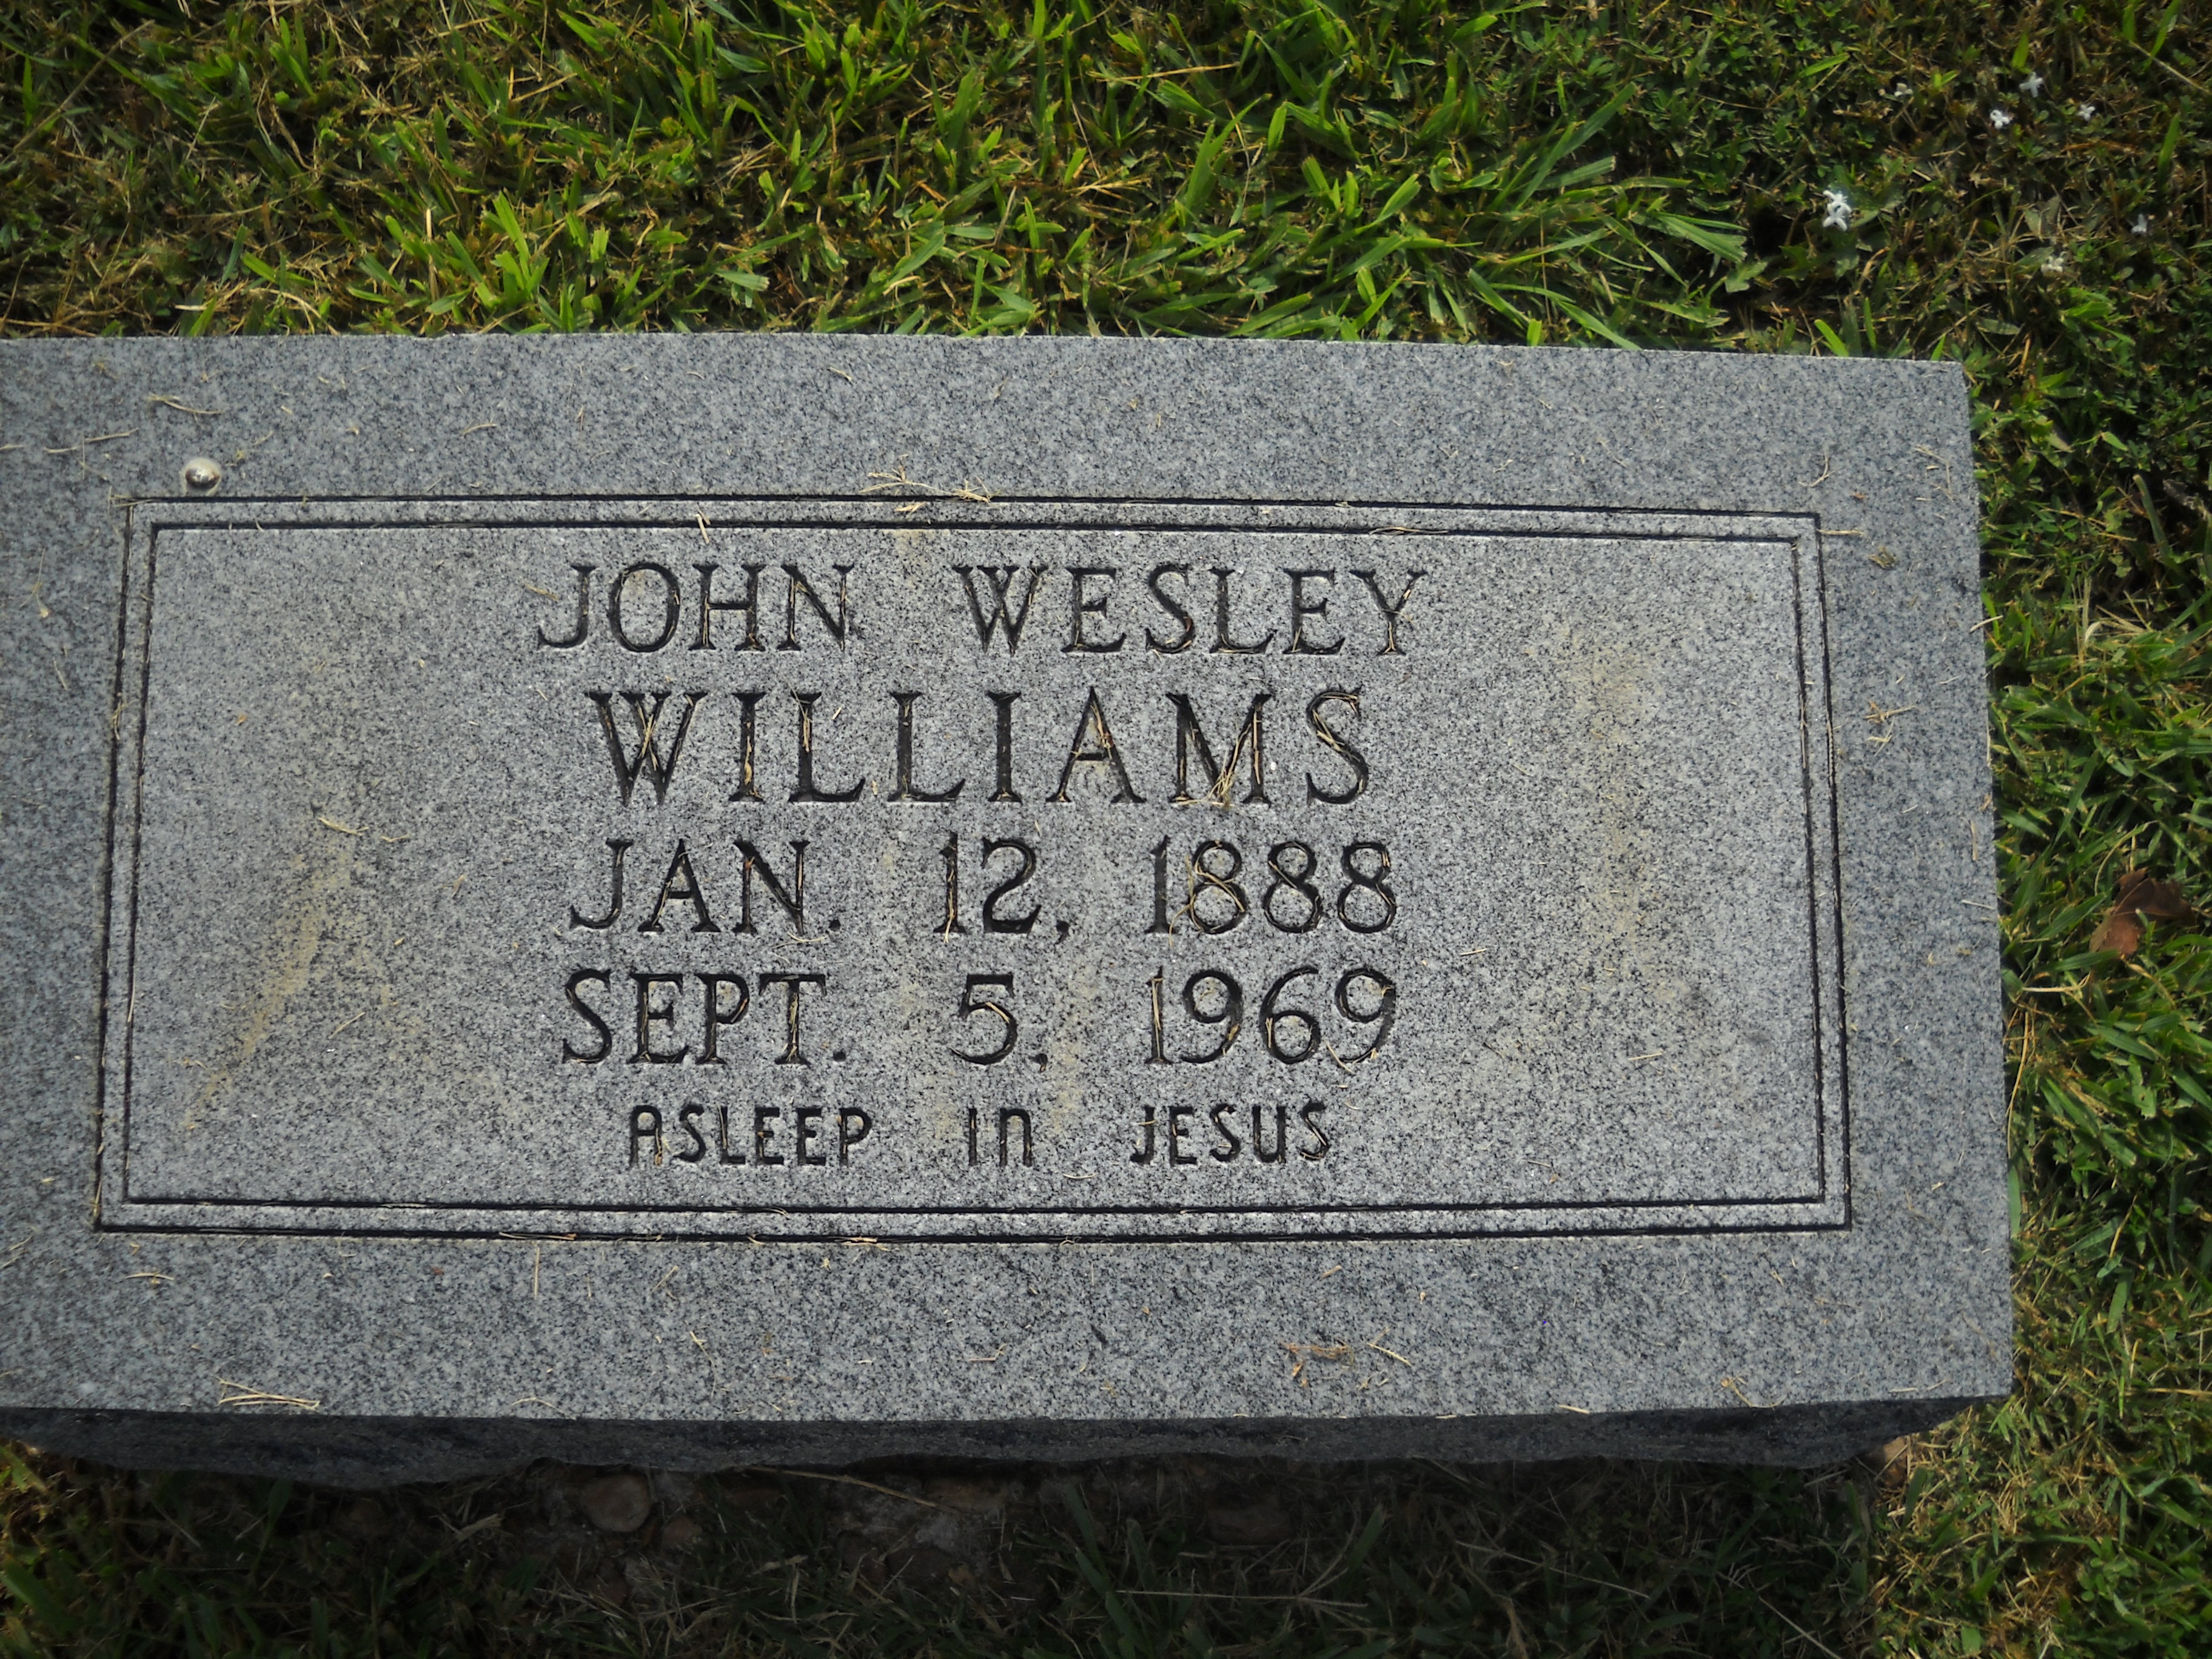 John Wesley Williams